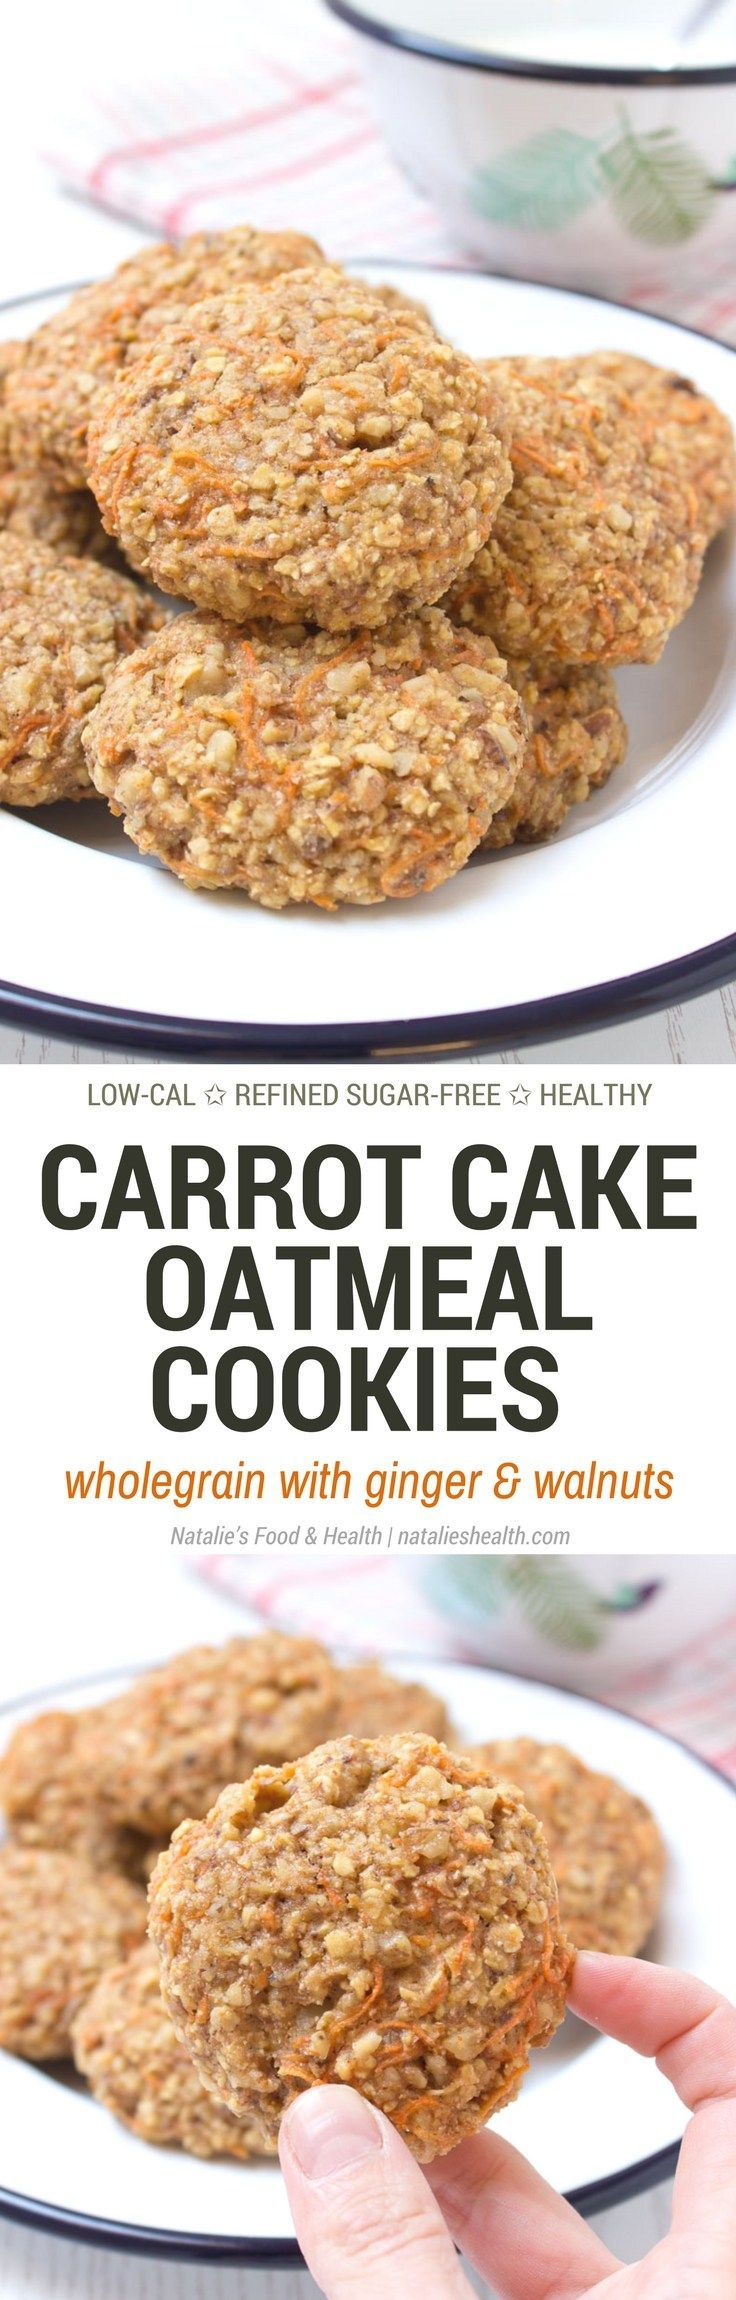 Healthy wholegrain Carrot Cake Oatmeal Cookies filled with oats, grated carrots, ginger, and walnuts. These cookies are low-fat, refined sugar-free, kid-friendly and super easy to make. Perfect breakfast or snack.